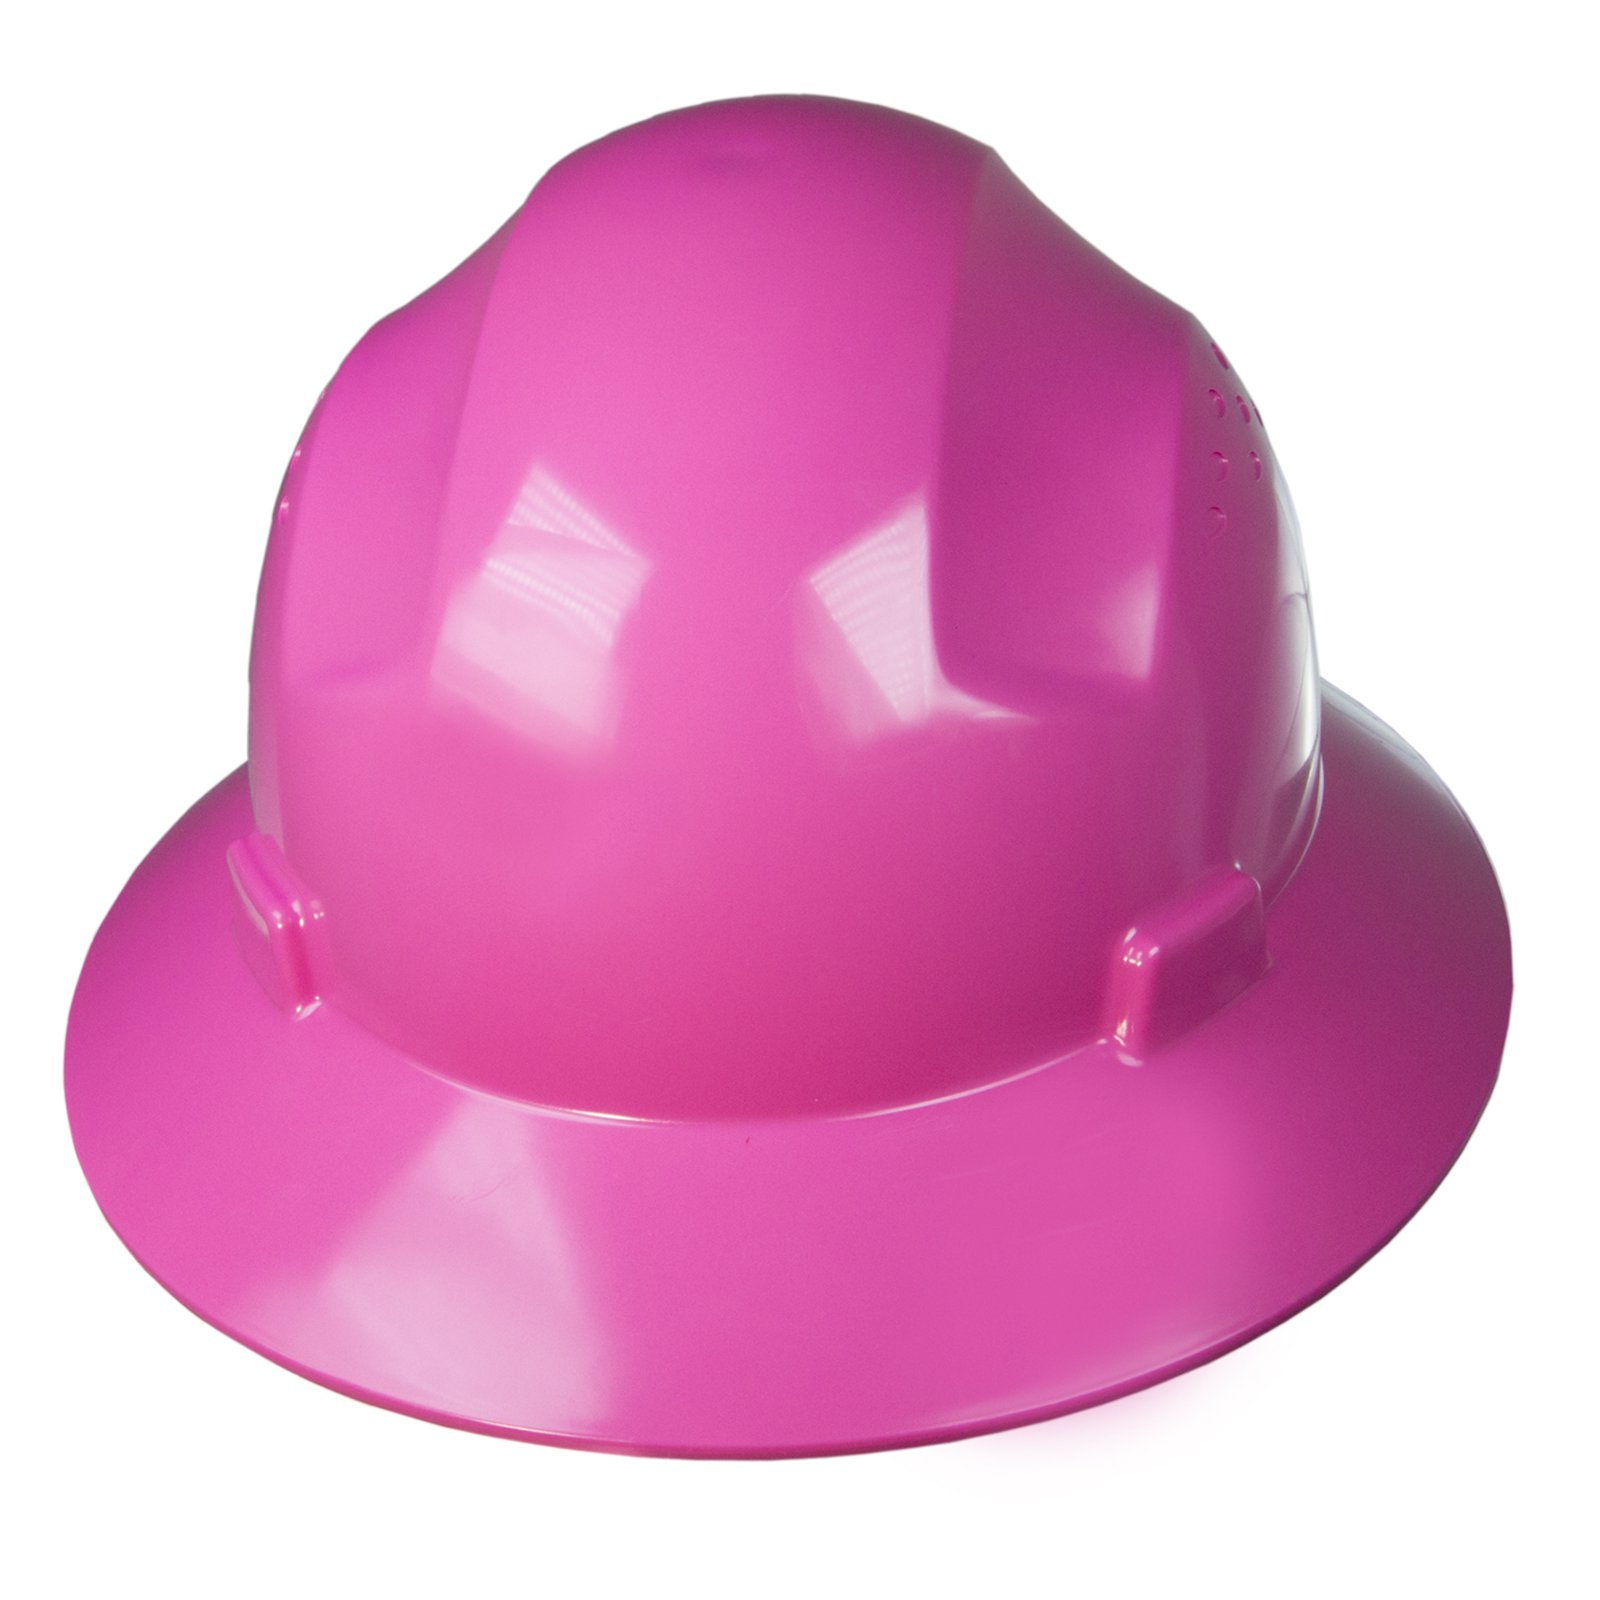 PPE By JORESTECH - HDPE Full Brim Style Hard Hat Helmet w/Adjustable Ratchet Suspension For Work, Home, and General Headwear Protection ANSI Z89.1-14 Compliant (Pink)